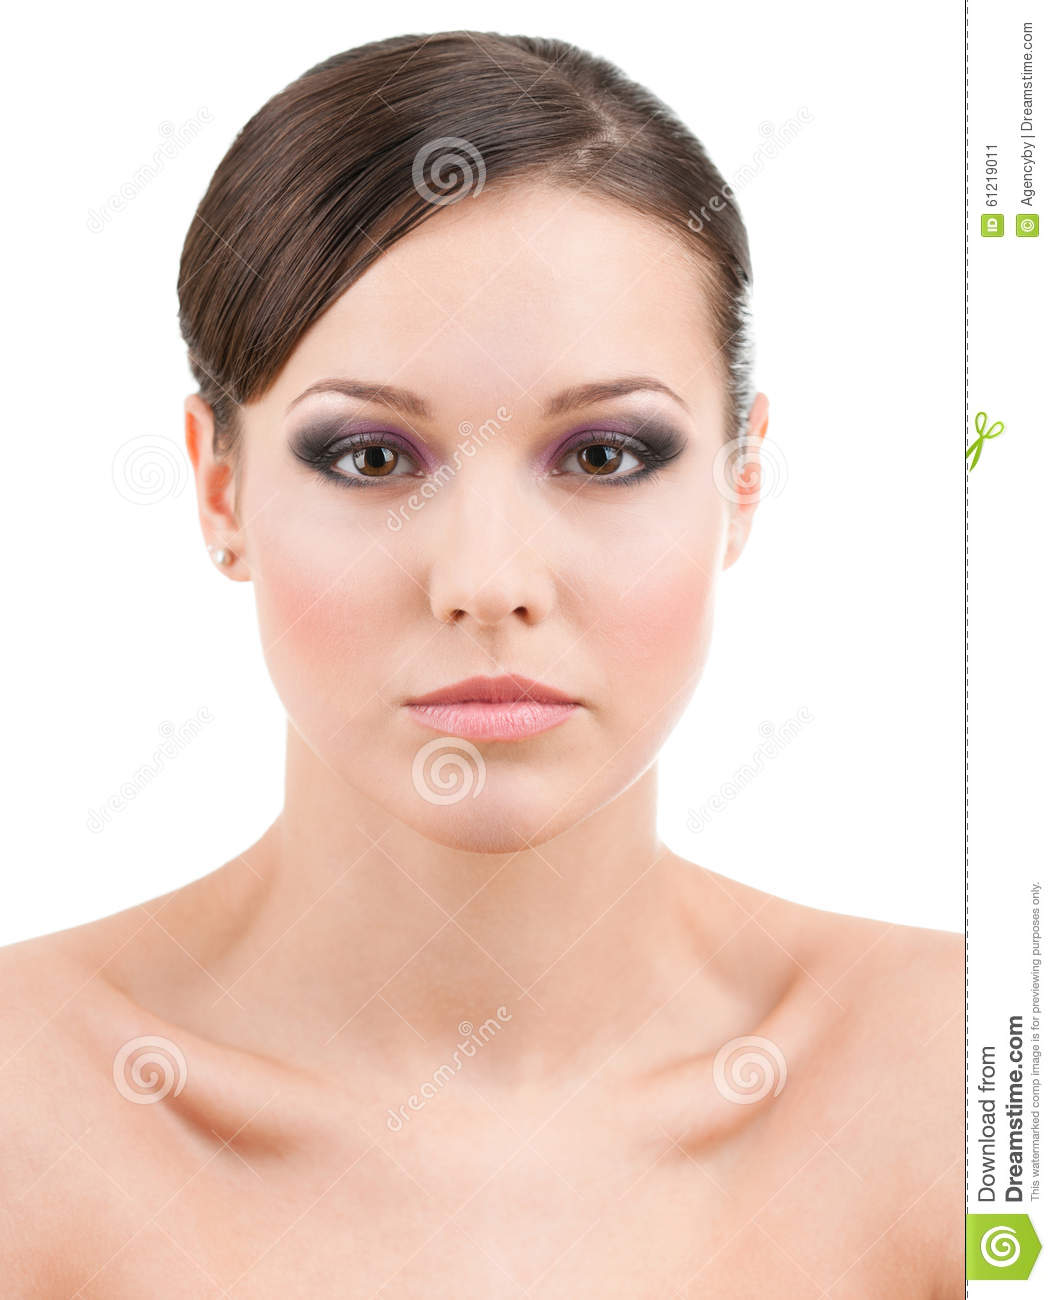 Front view of beautiful woman with makeup